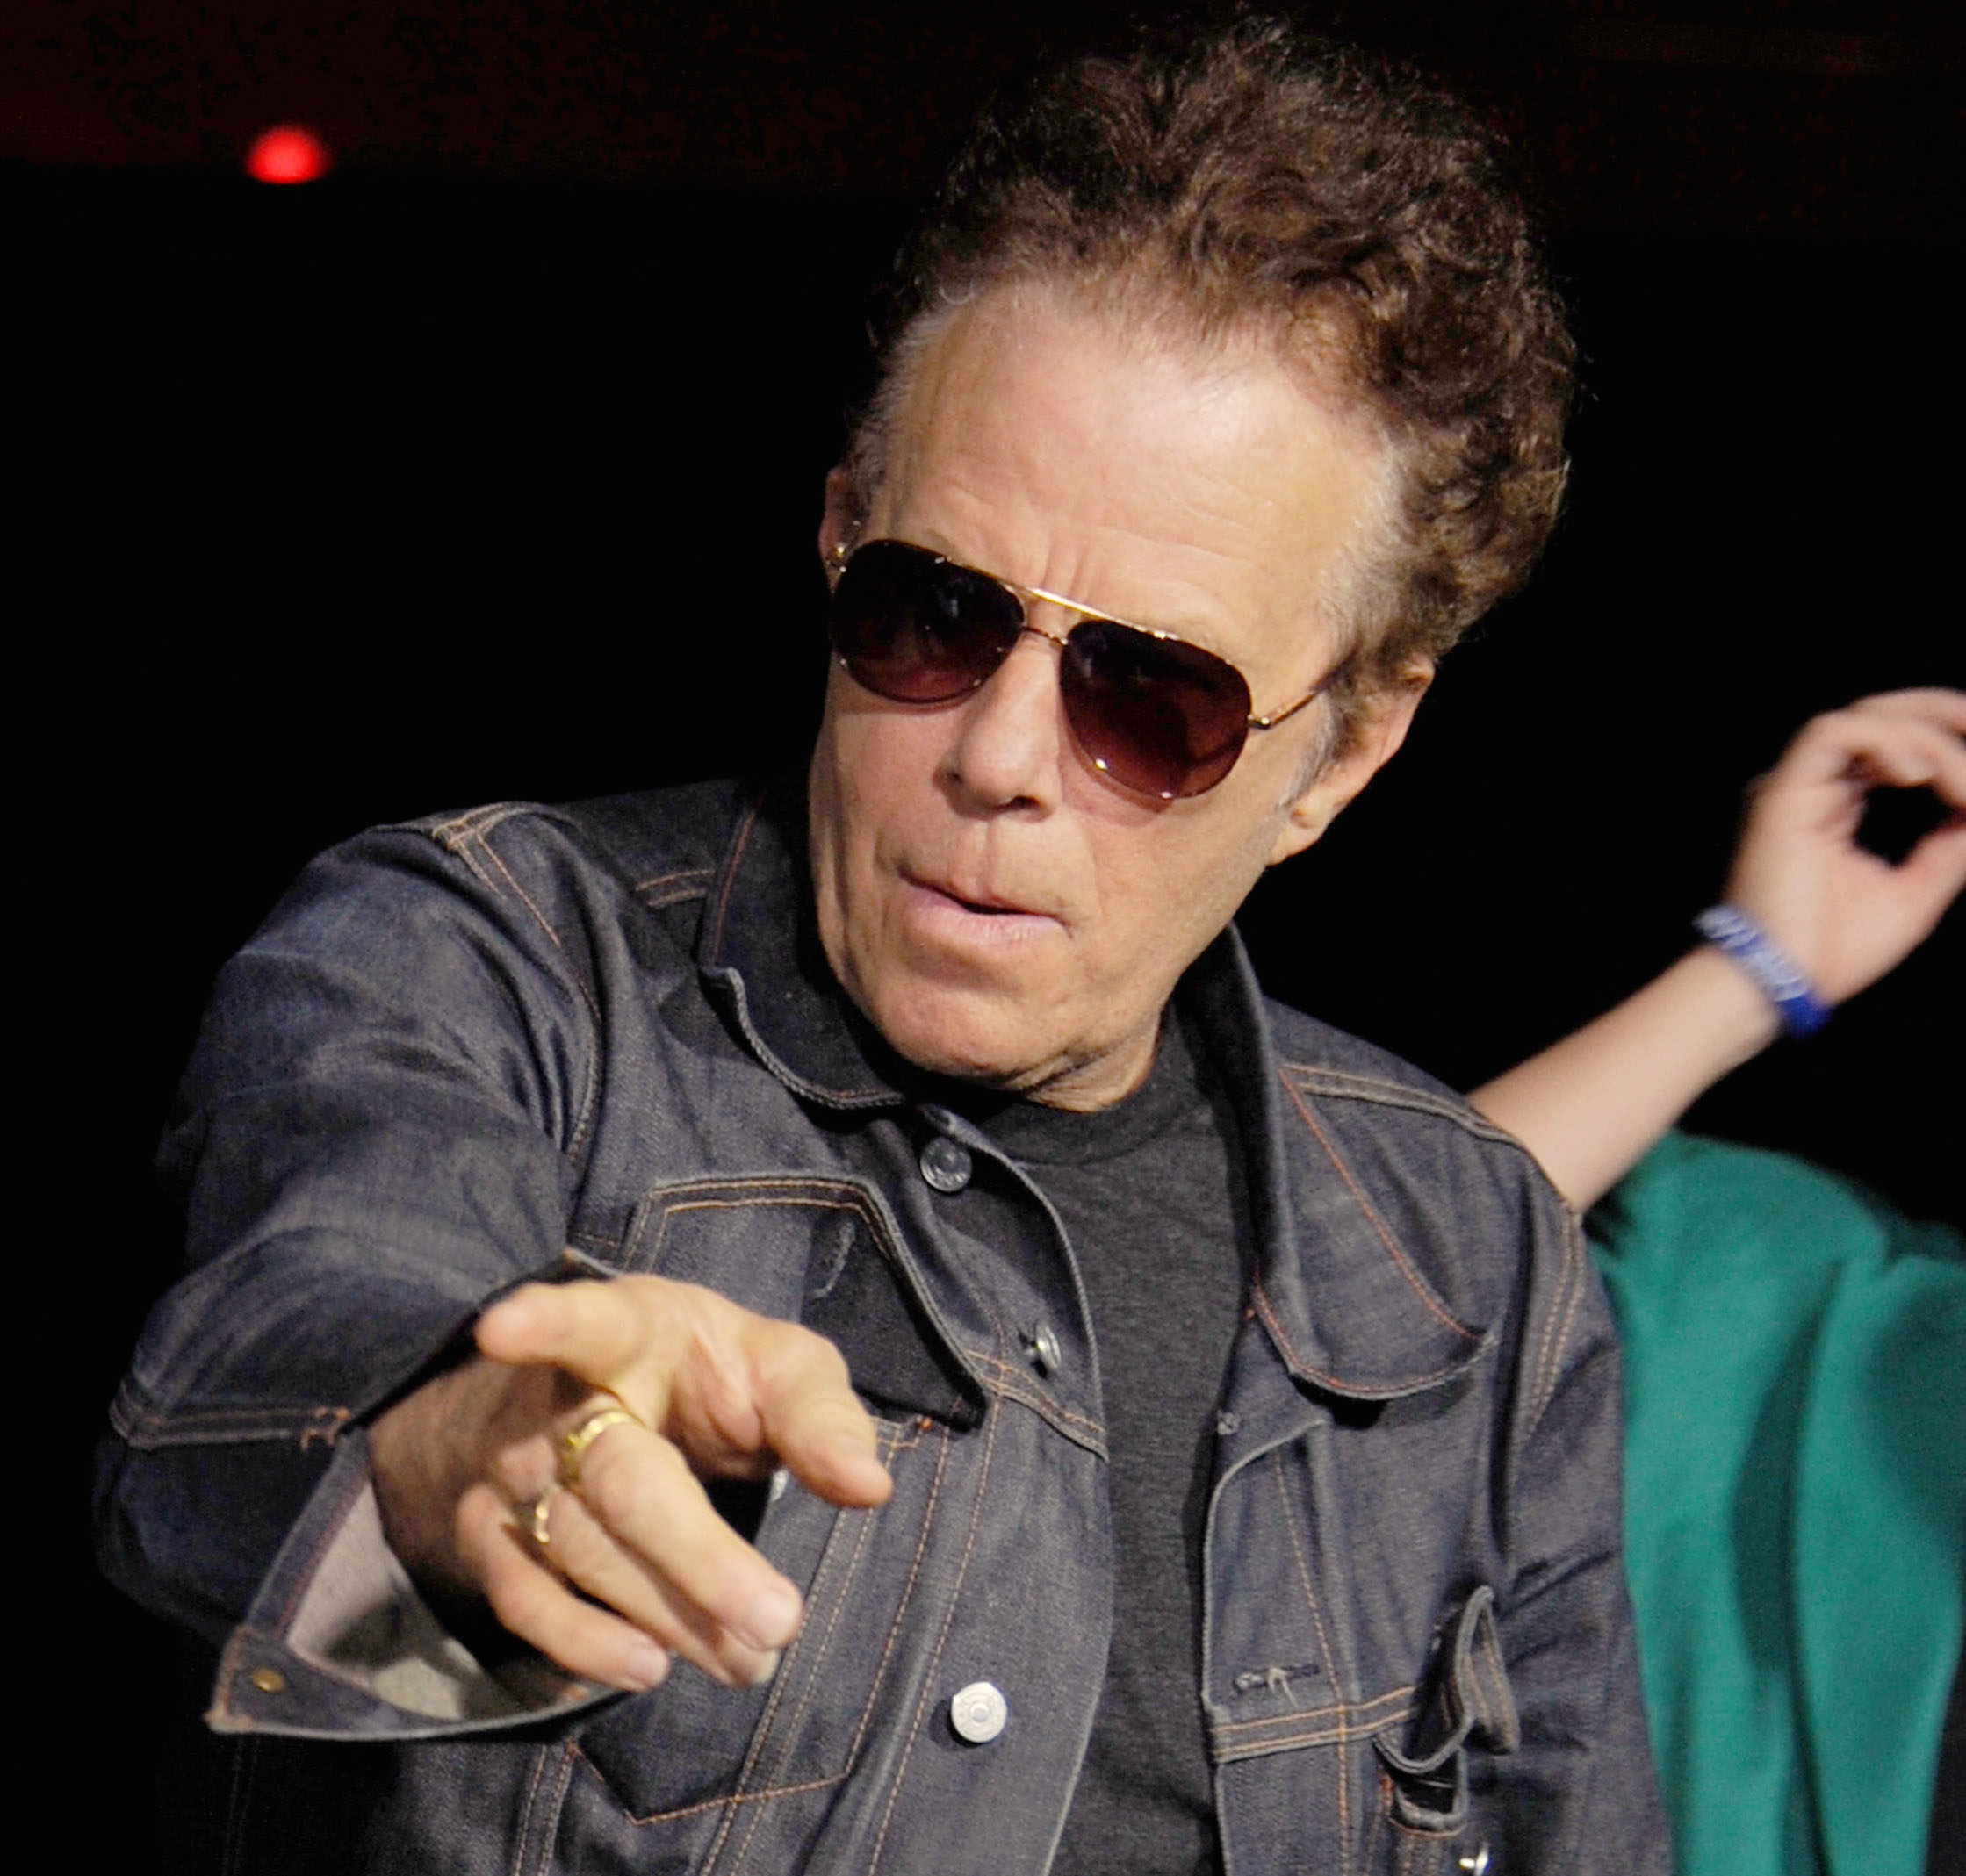 tom waits   kathleen brennan to receive song lyrics of two year anniversary quotes two year anniversary card